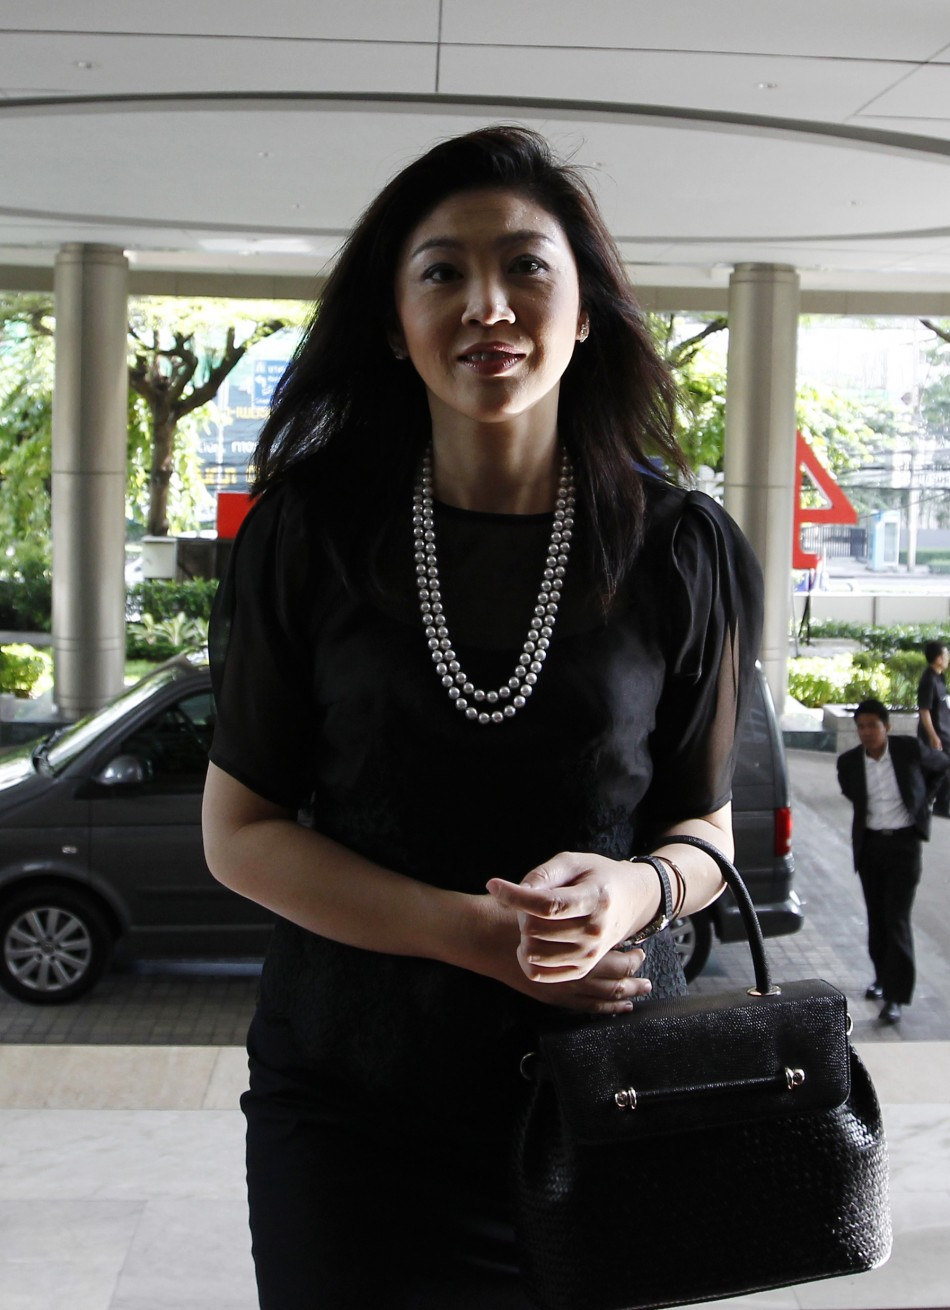 Thailand's prime minister elect Yingluck arrives for work at the headquarters of her Puea Thai Party in Bangkok